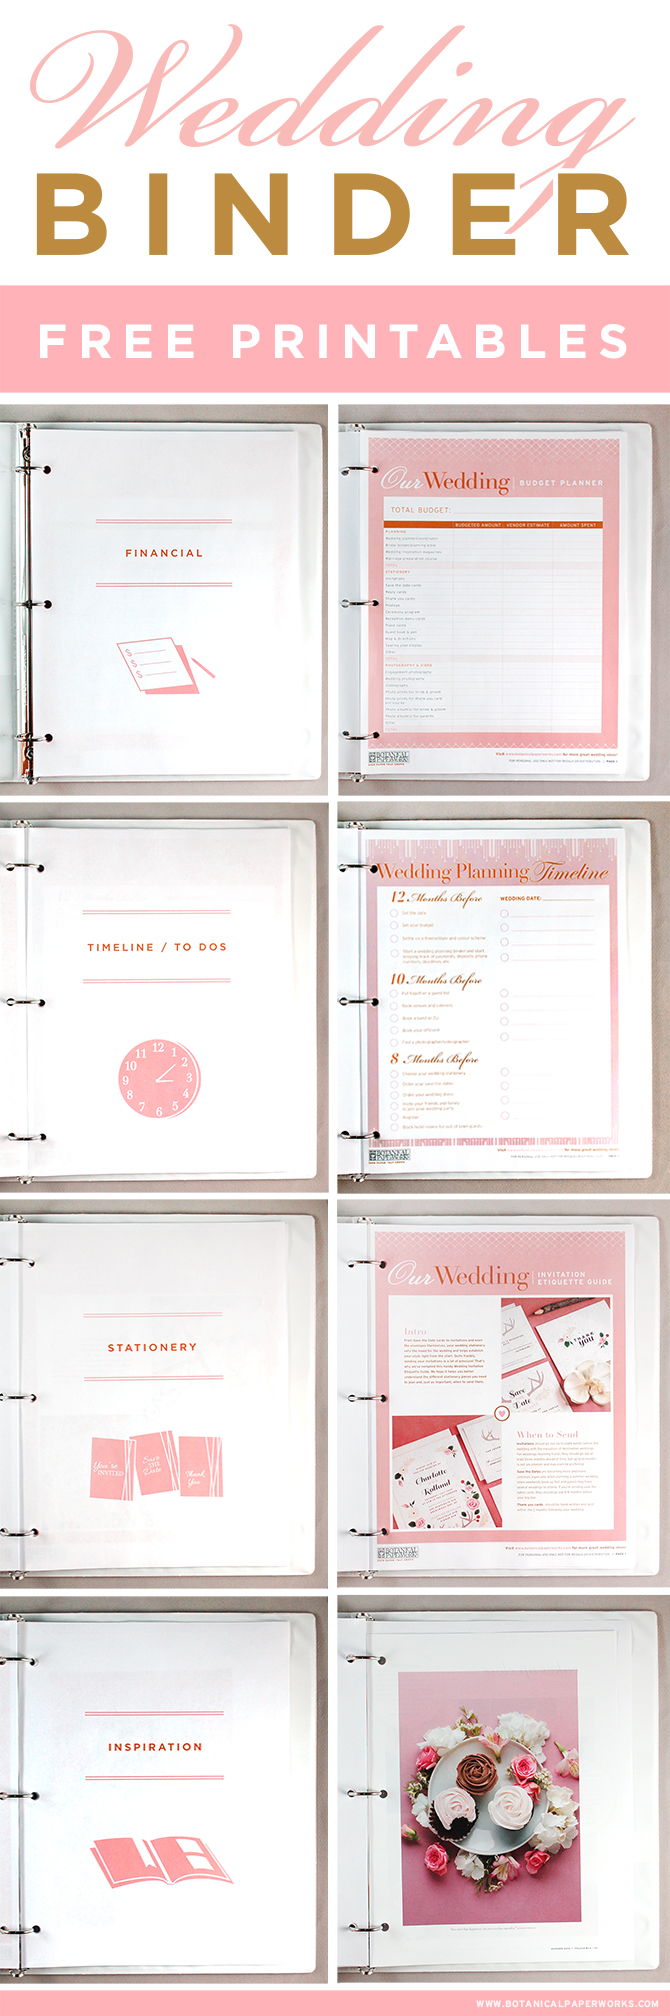 wedding planning sheets   Keni.ganamas.co